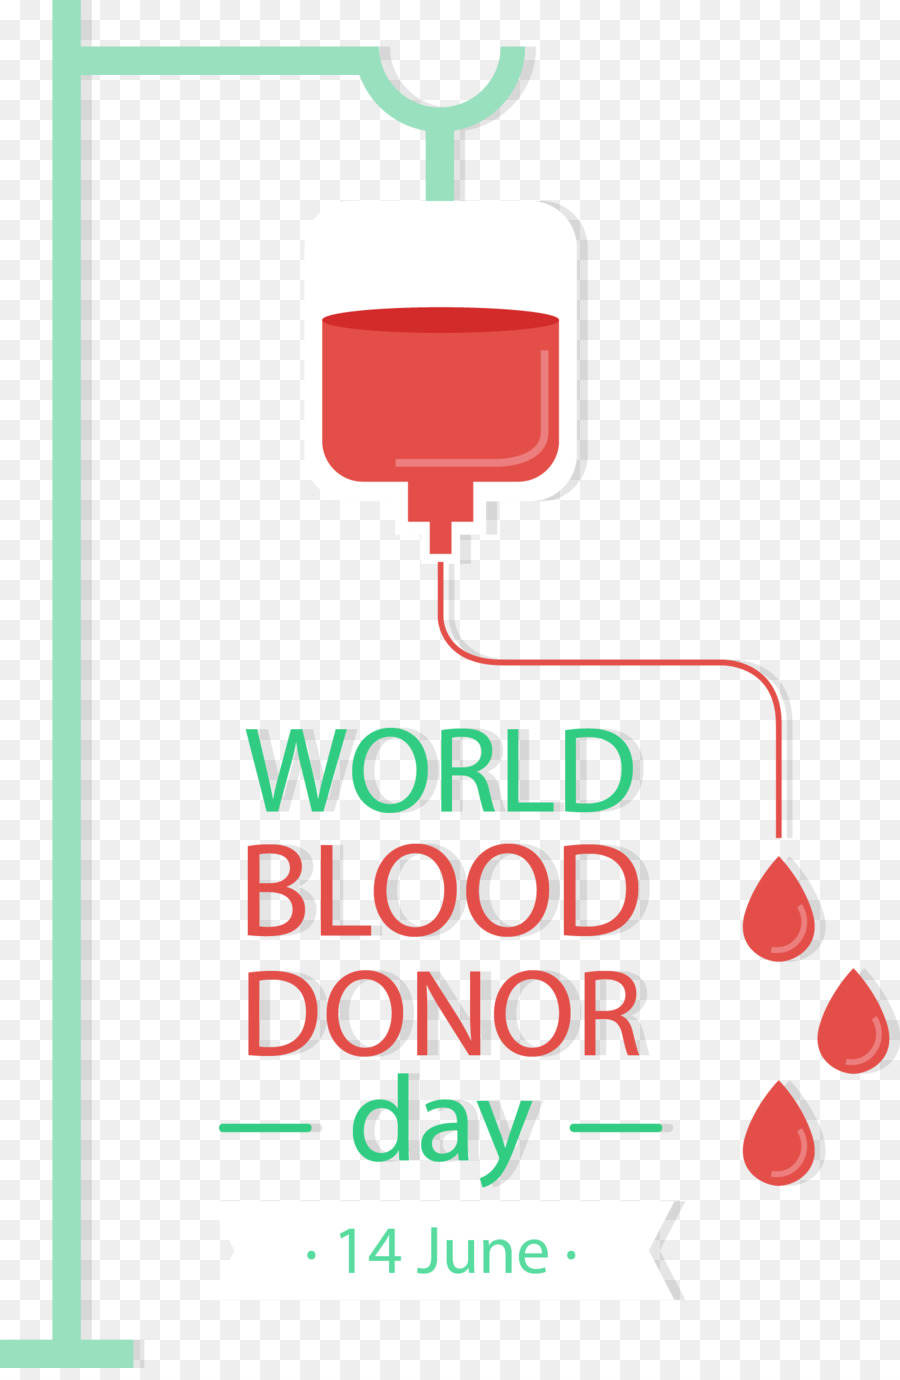 World Blood Donor Day png download - 1344*2043 - Free